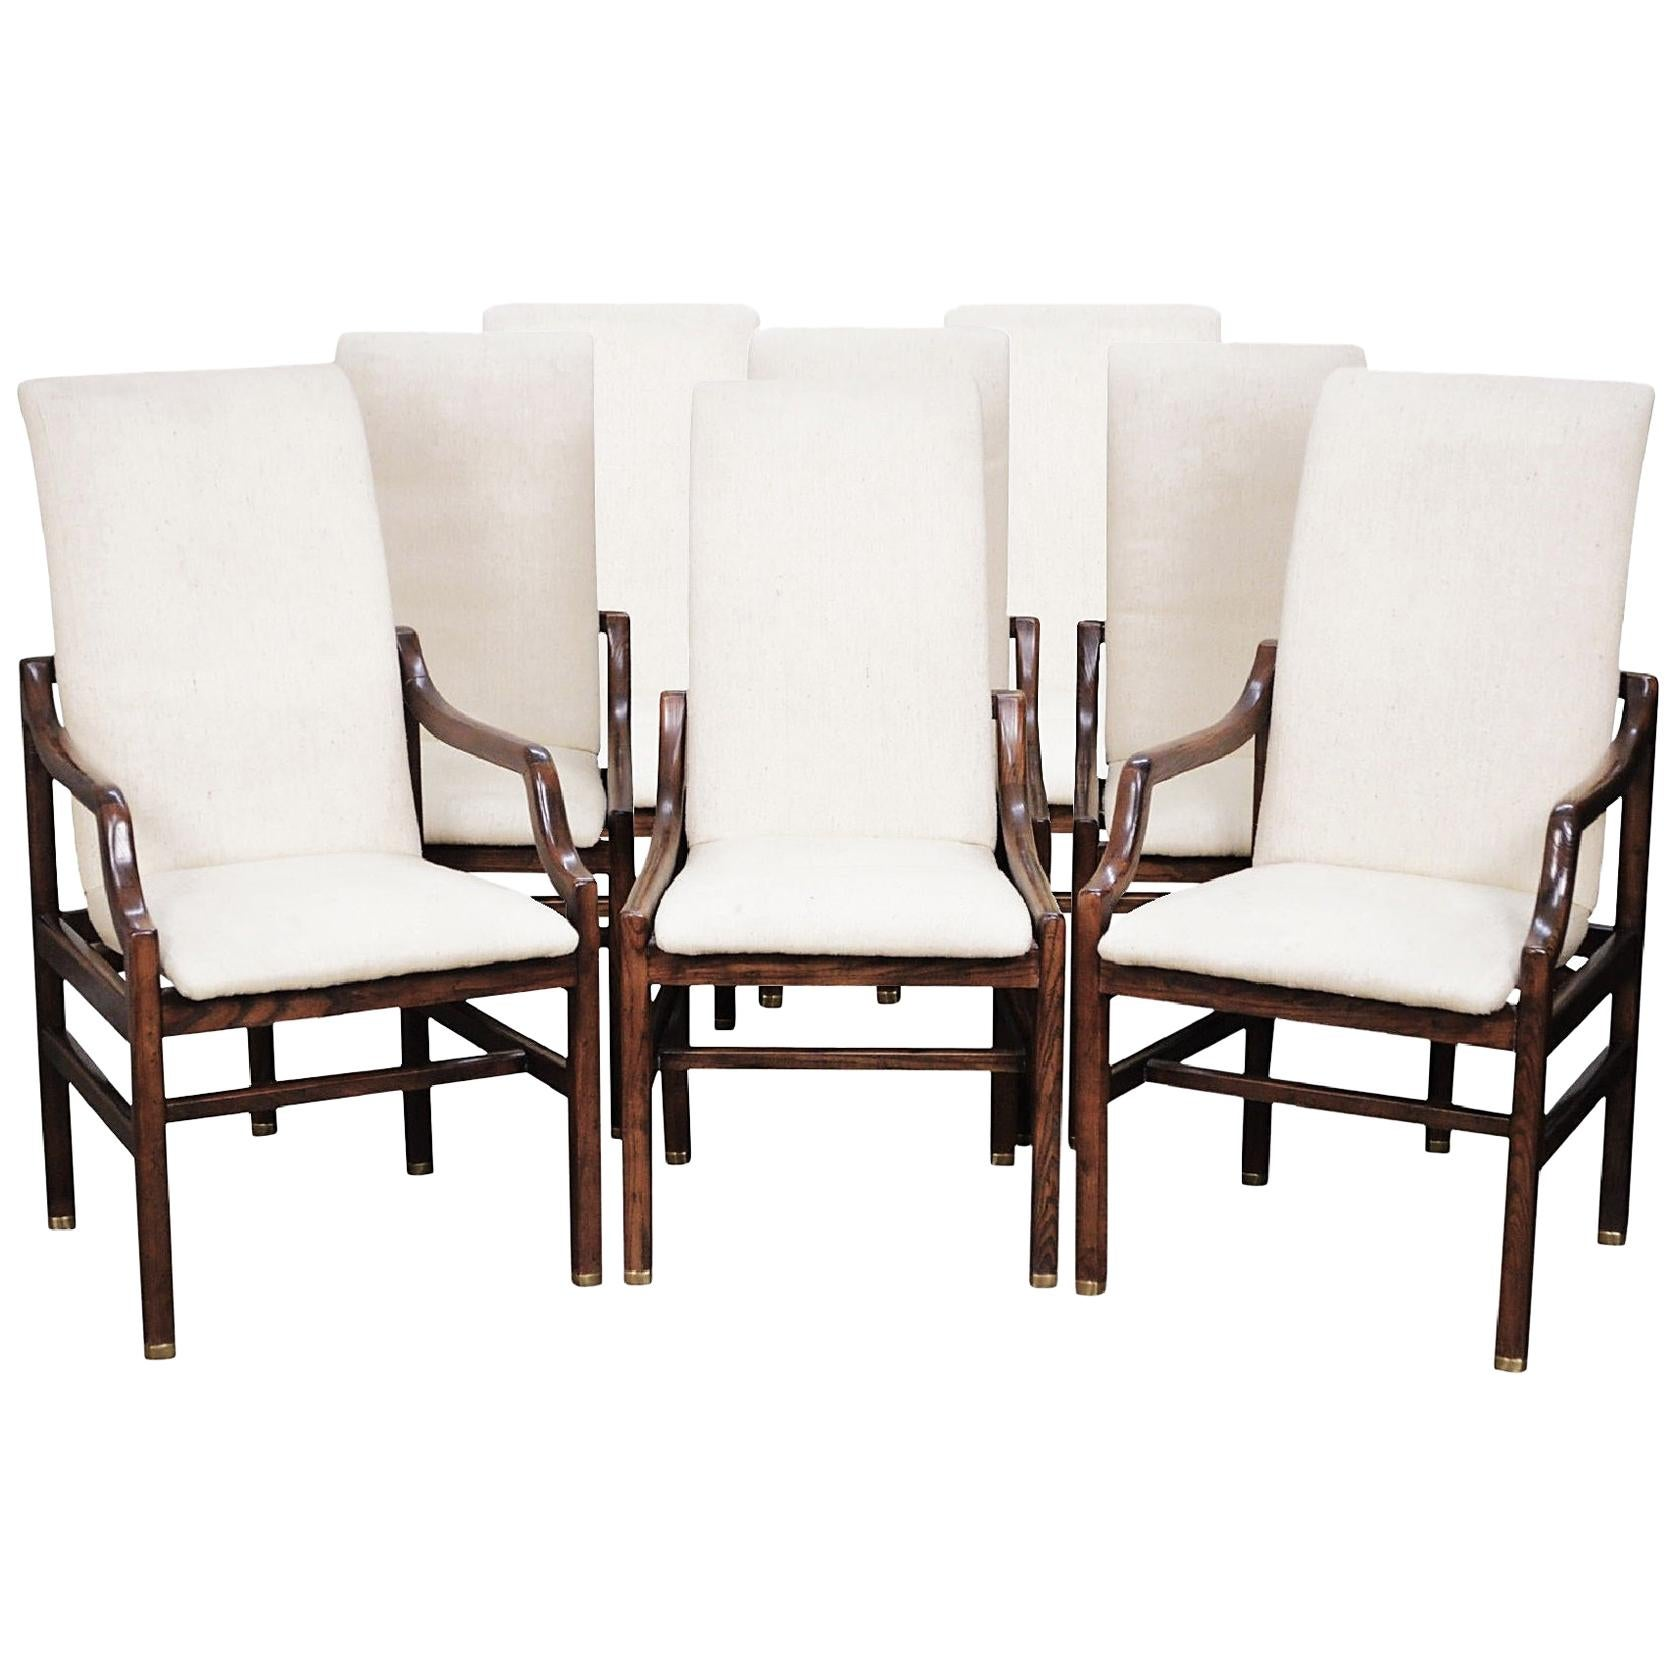 Gorgeous Set of Eight Vintage Henredon Dining Chairs in Walnut